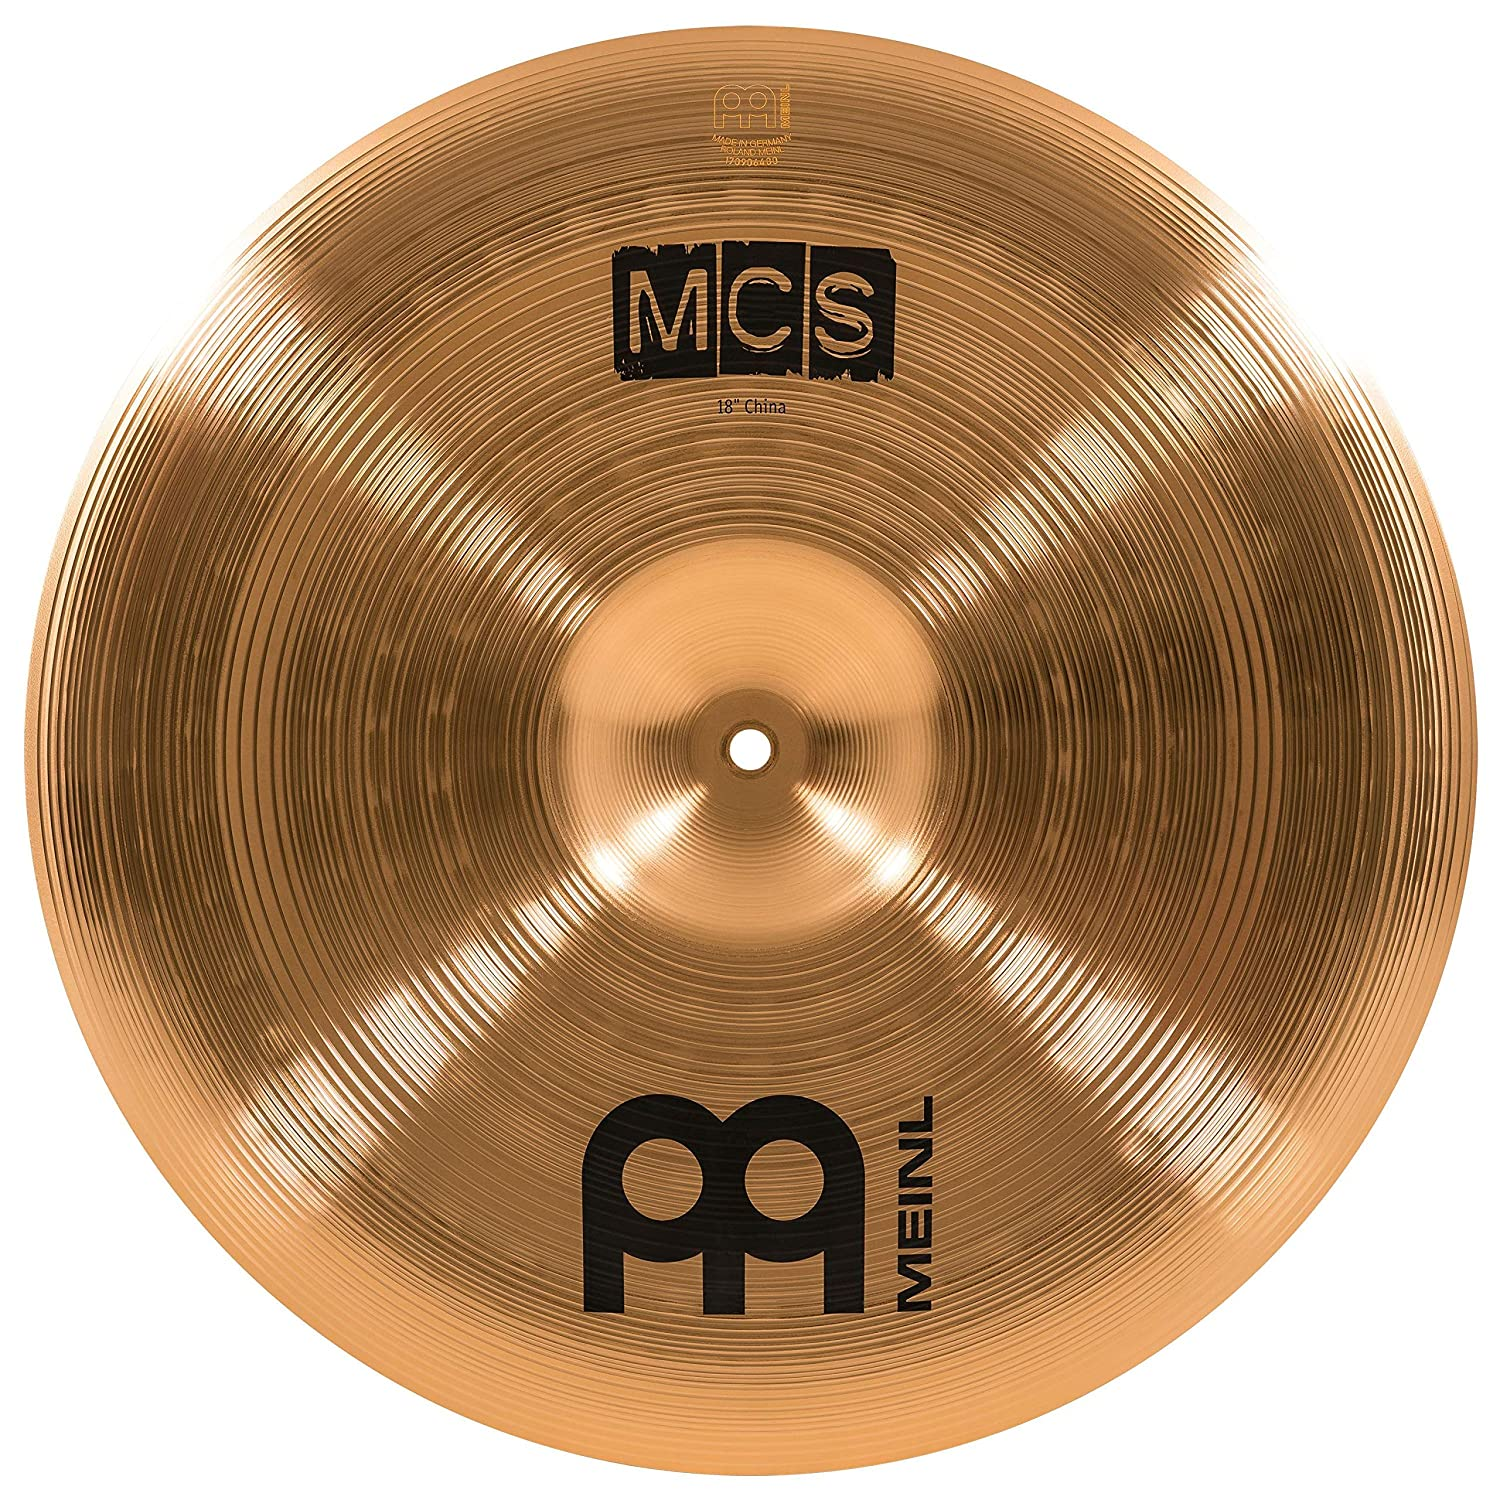 Meinl Cymbals MCS18CH 18-Inch MCS Traditional China